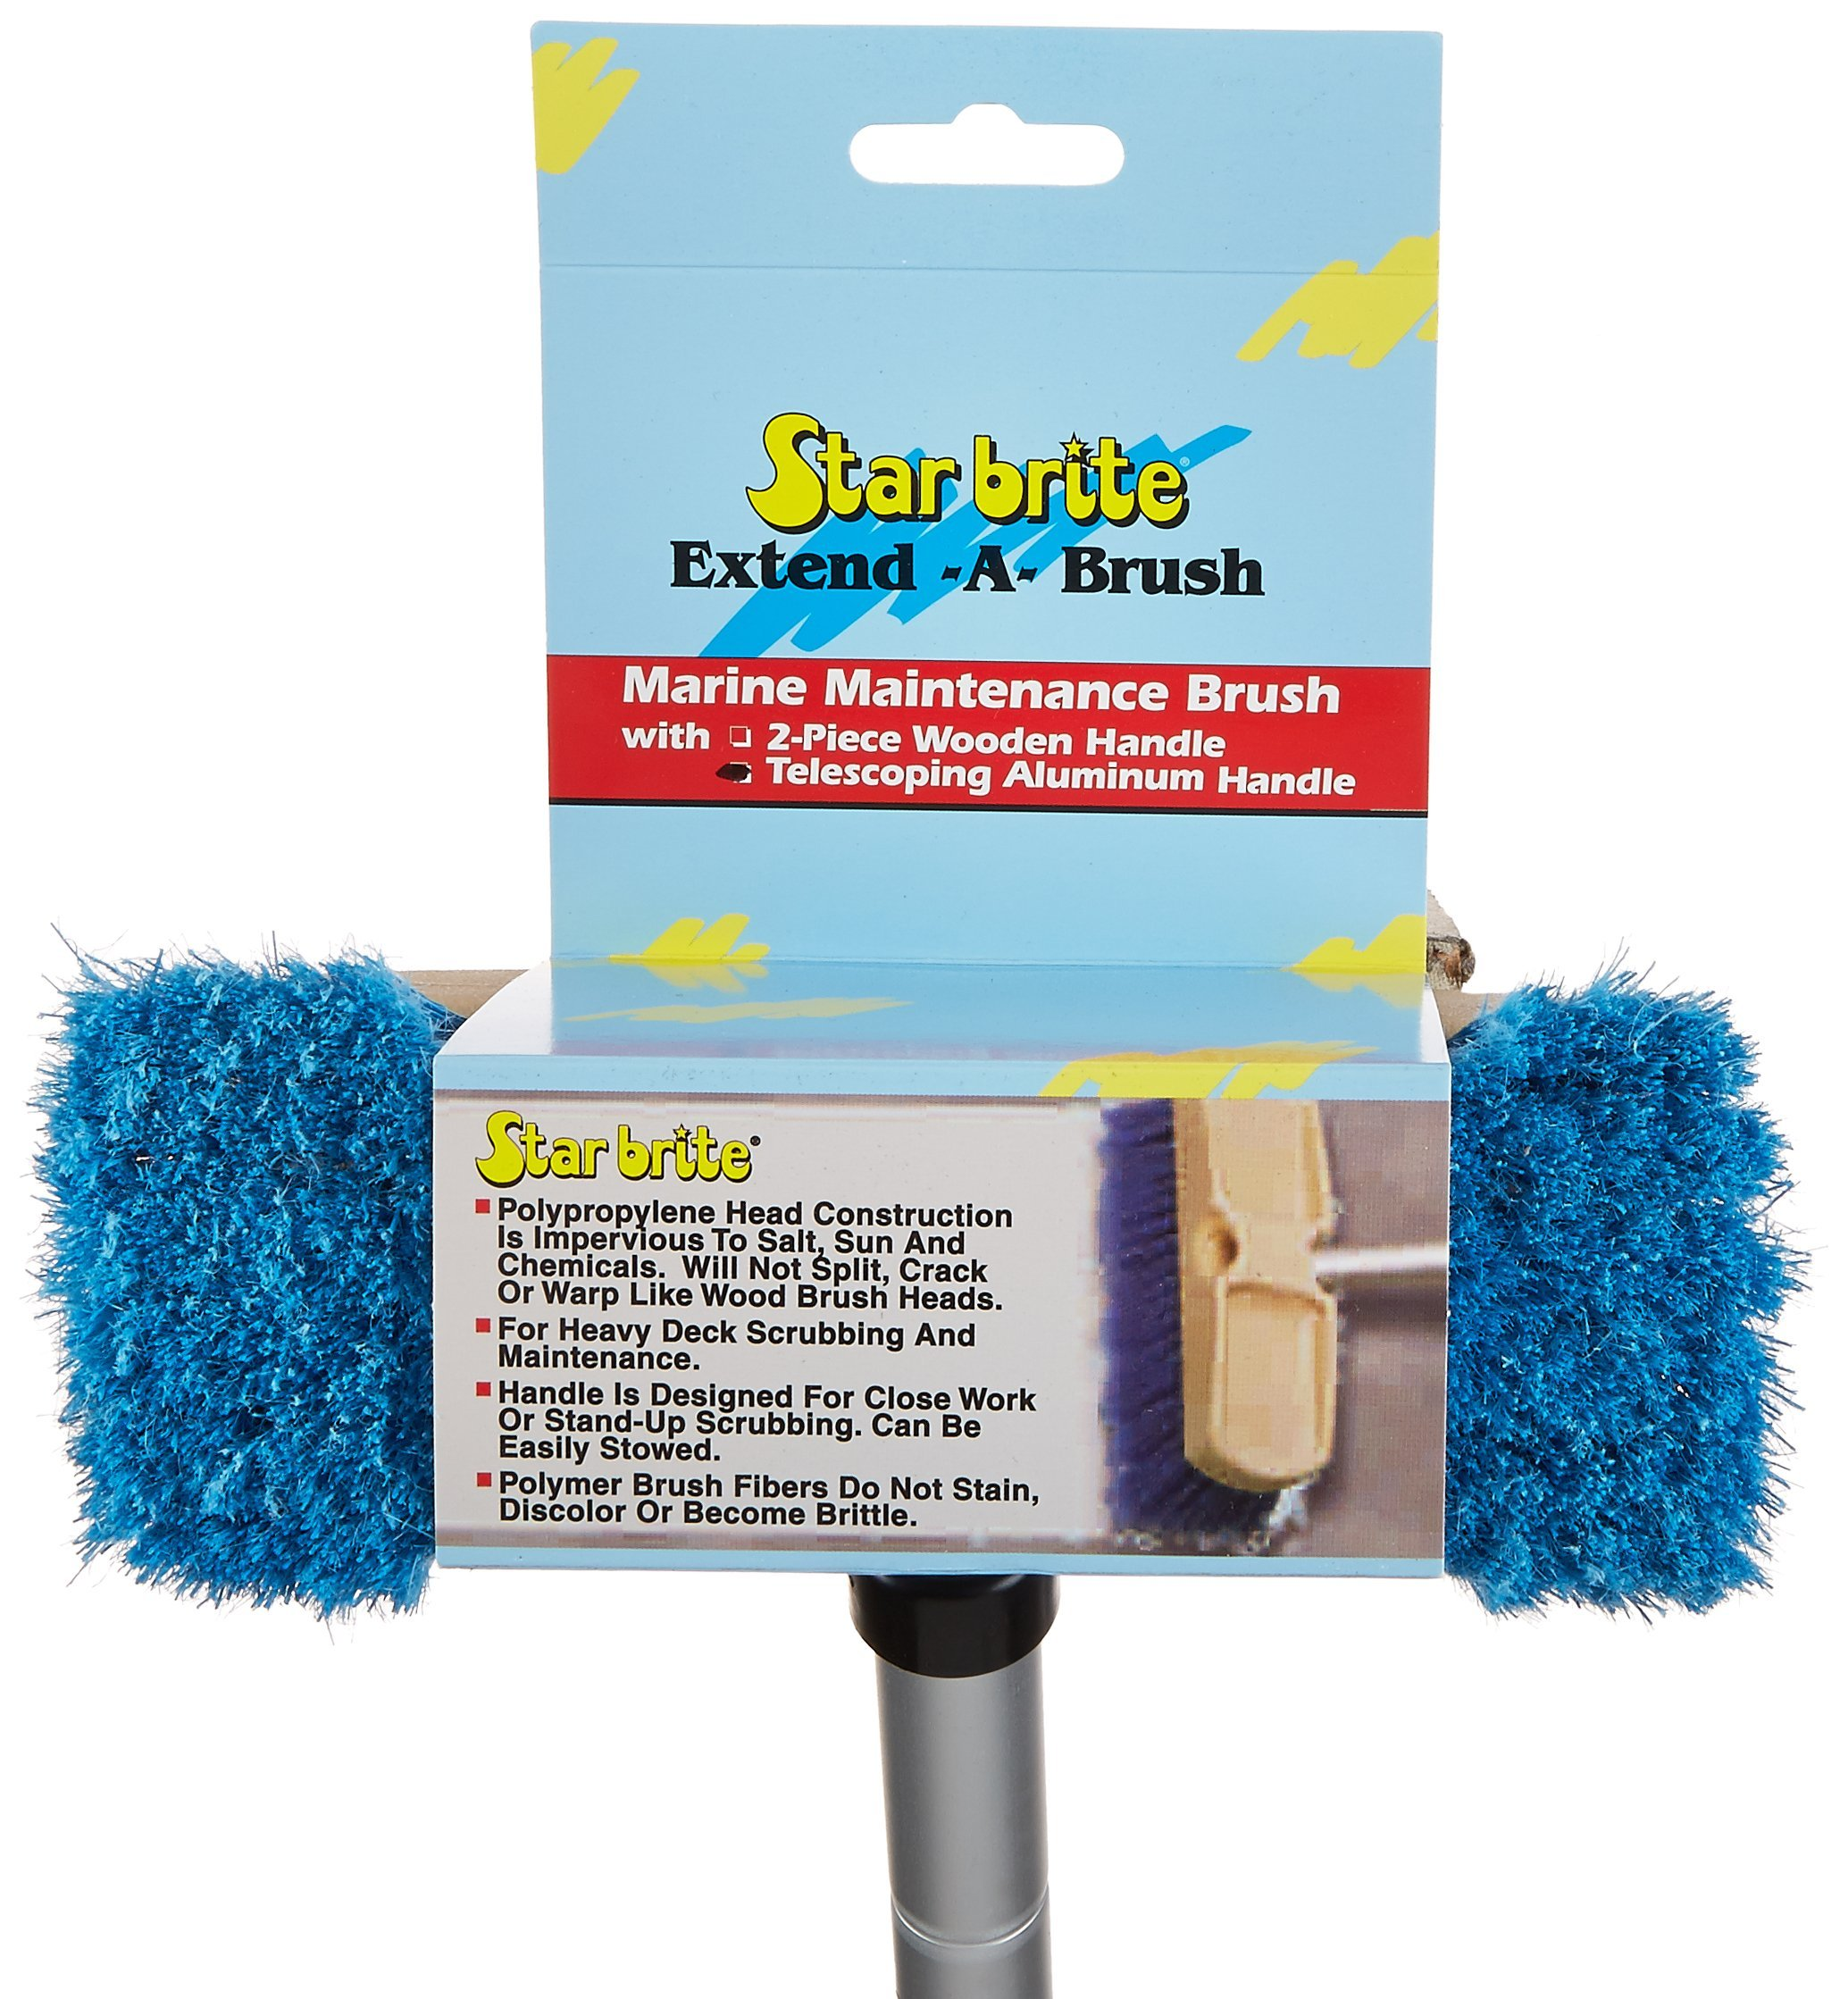 Star brite Brush & Compact Handle Combo - Extends 2'-4' - Made in USA by Star Brite (Image #3)